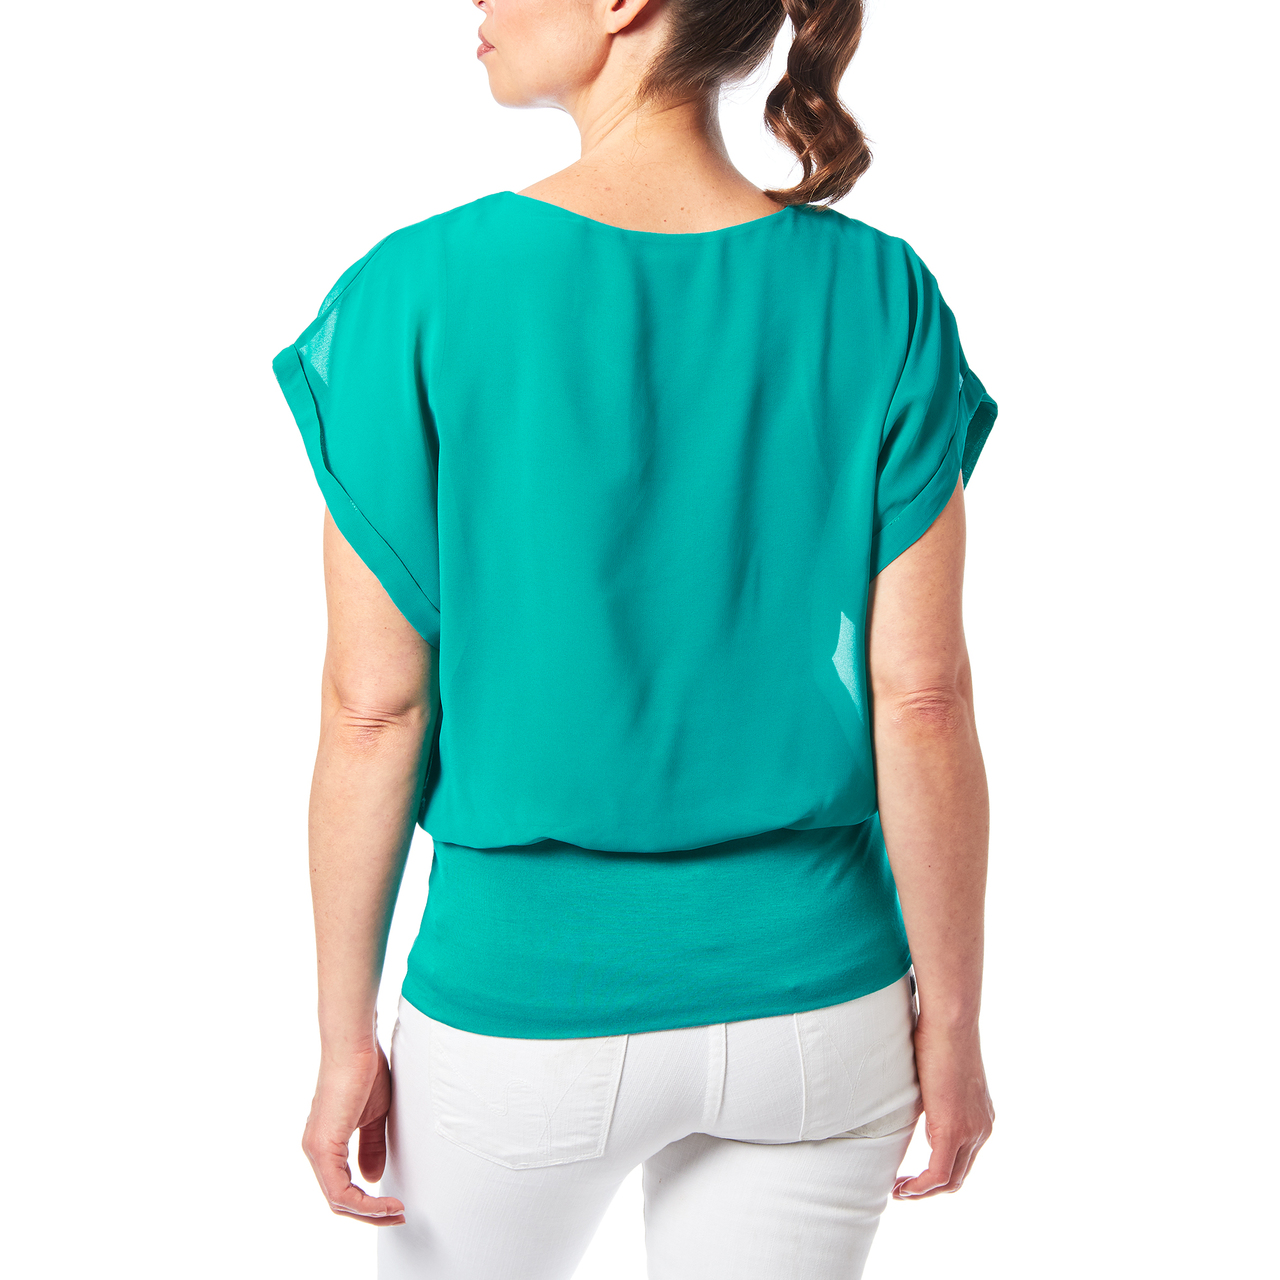 Dolman Sleeve Chiffon Top With Knit Banded Bottom In Teal Green